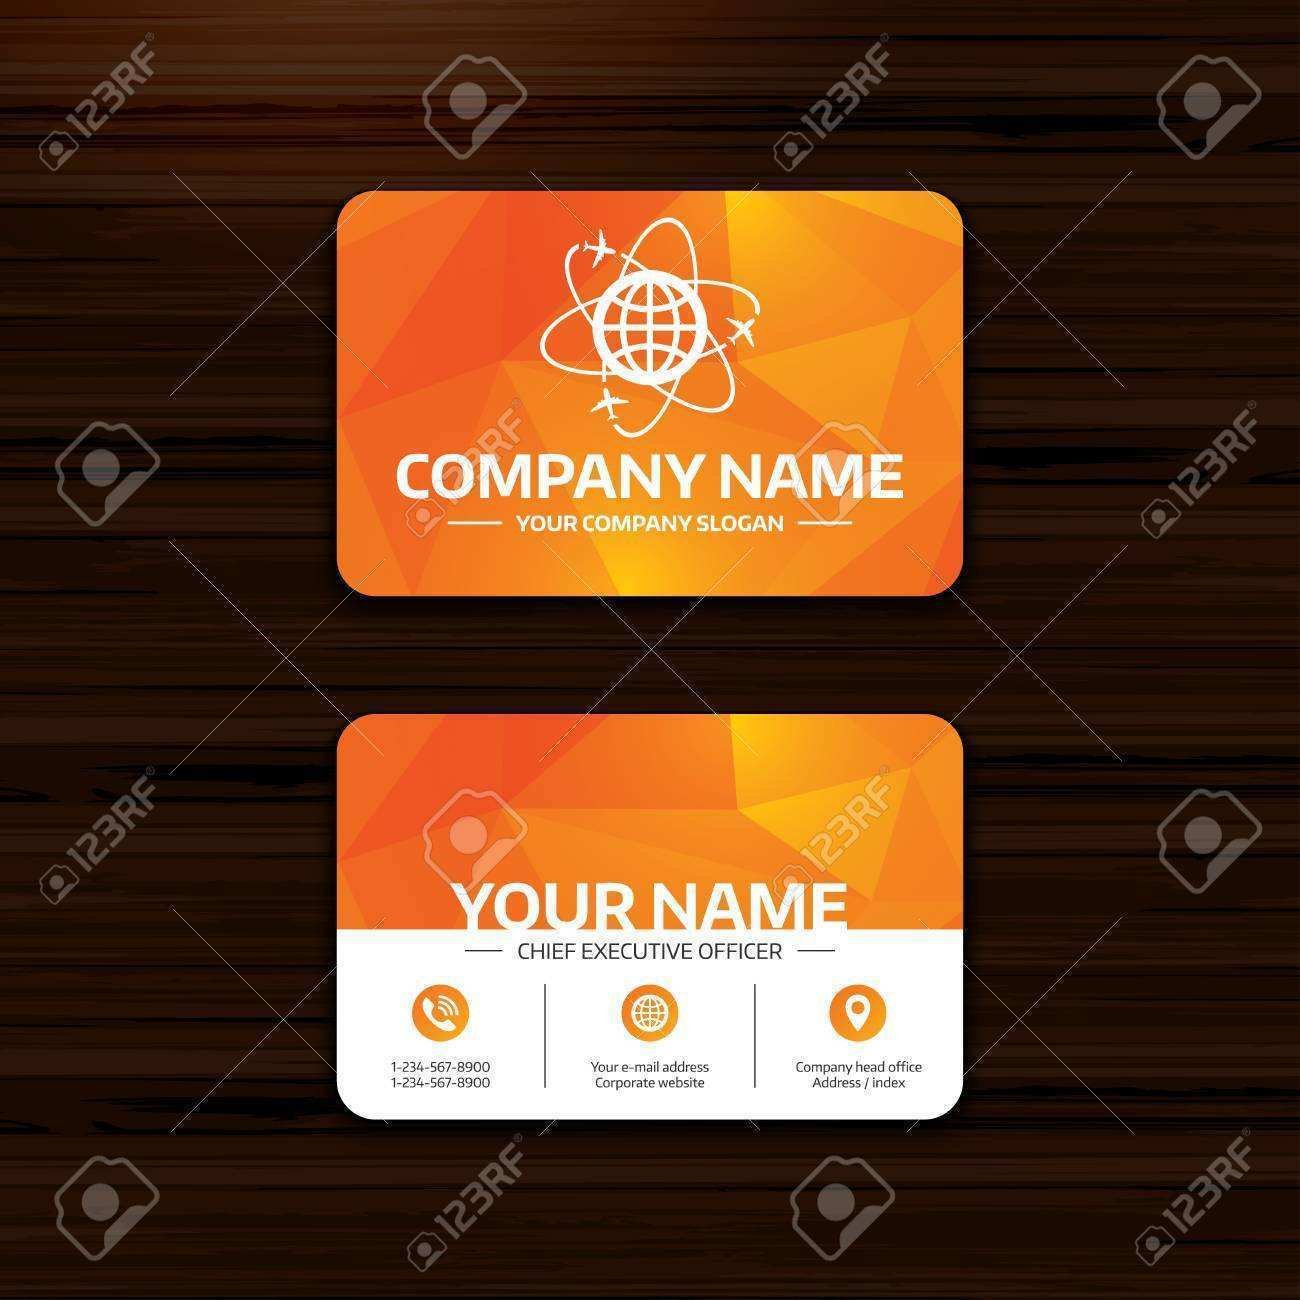 55 Report Business Card Template Globe Templates with Business Card Template Globe